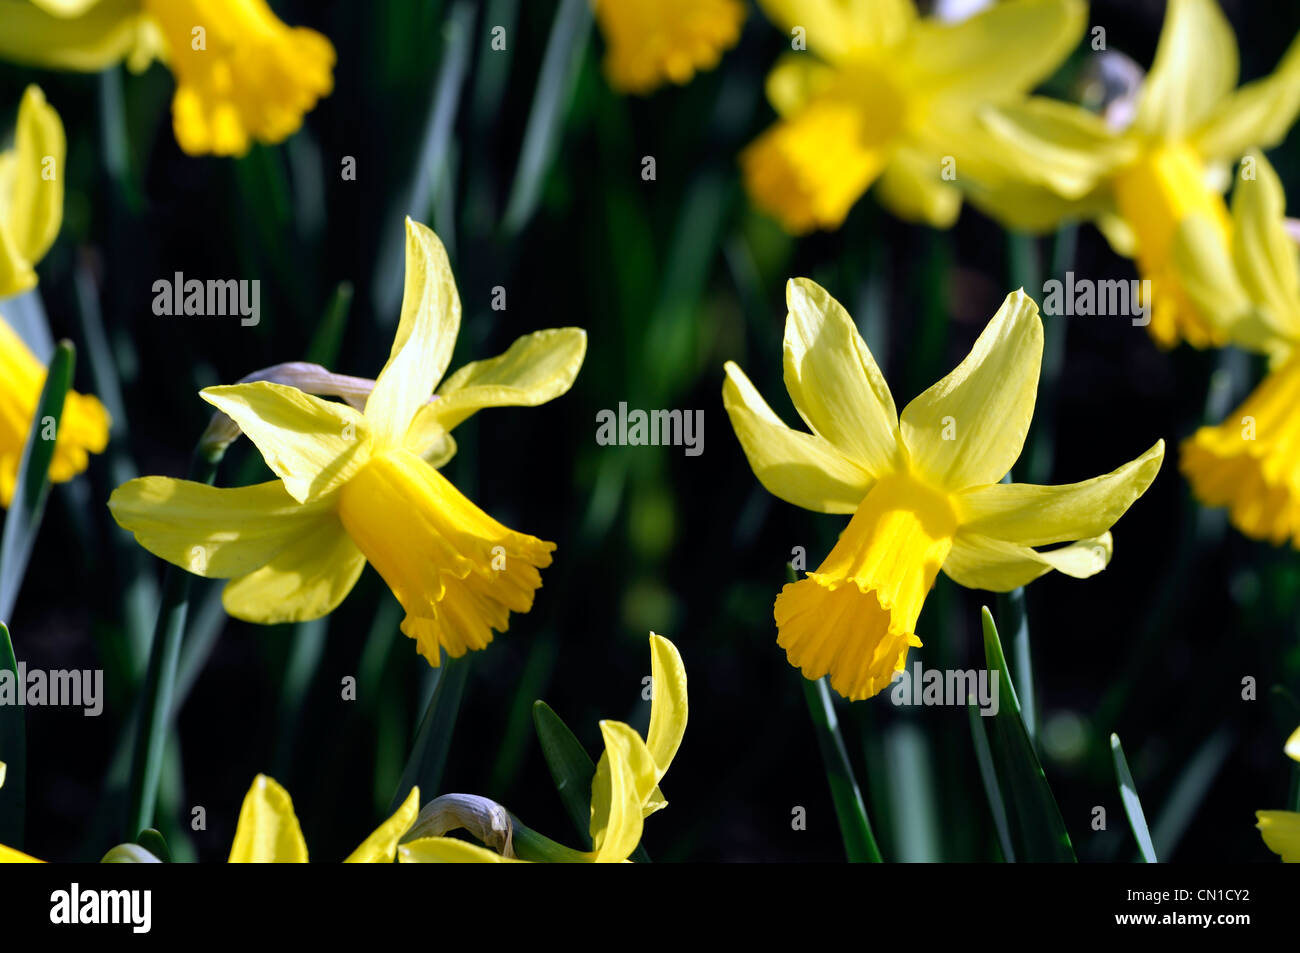 narcissus february gold dwarf cyclamineus Div 6 early hybrid golden-yellow petals - Stock Image